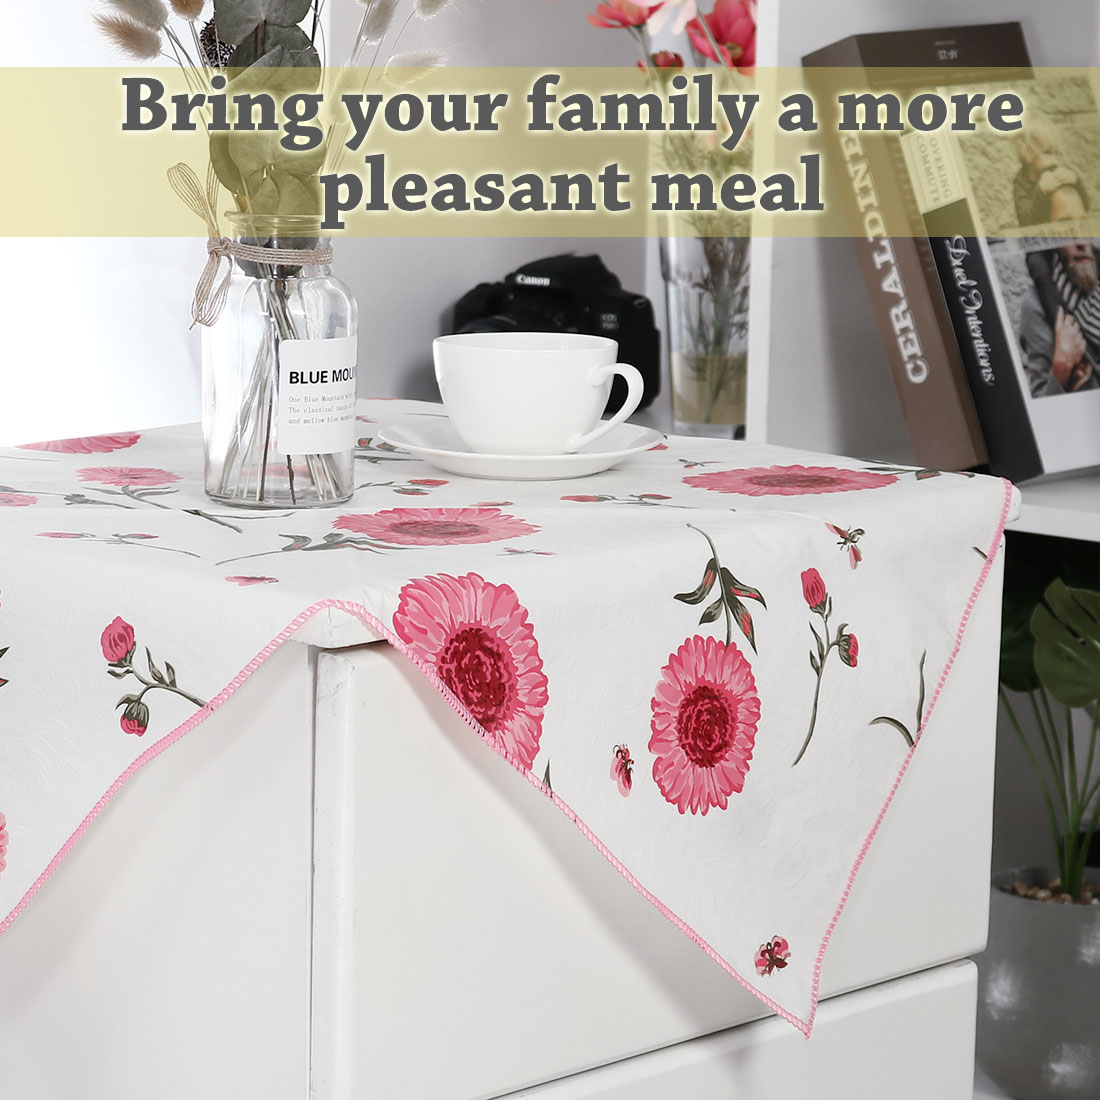 Vinyl Plastic Home Picnic Square Tablecloth Table Cloth Cover Water/Oil Stain Resistant Pink 35 x 35 Inch Sunflower Patt - image 3 of 8